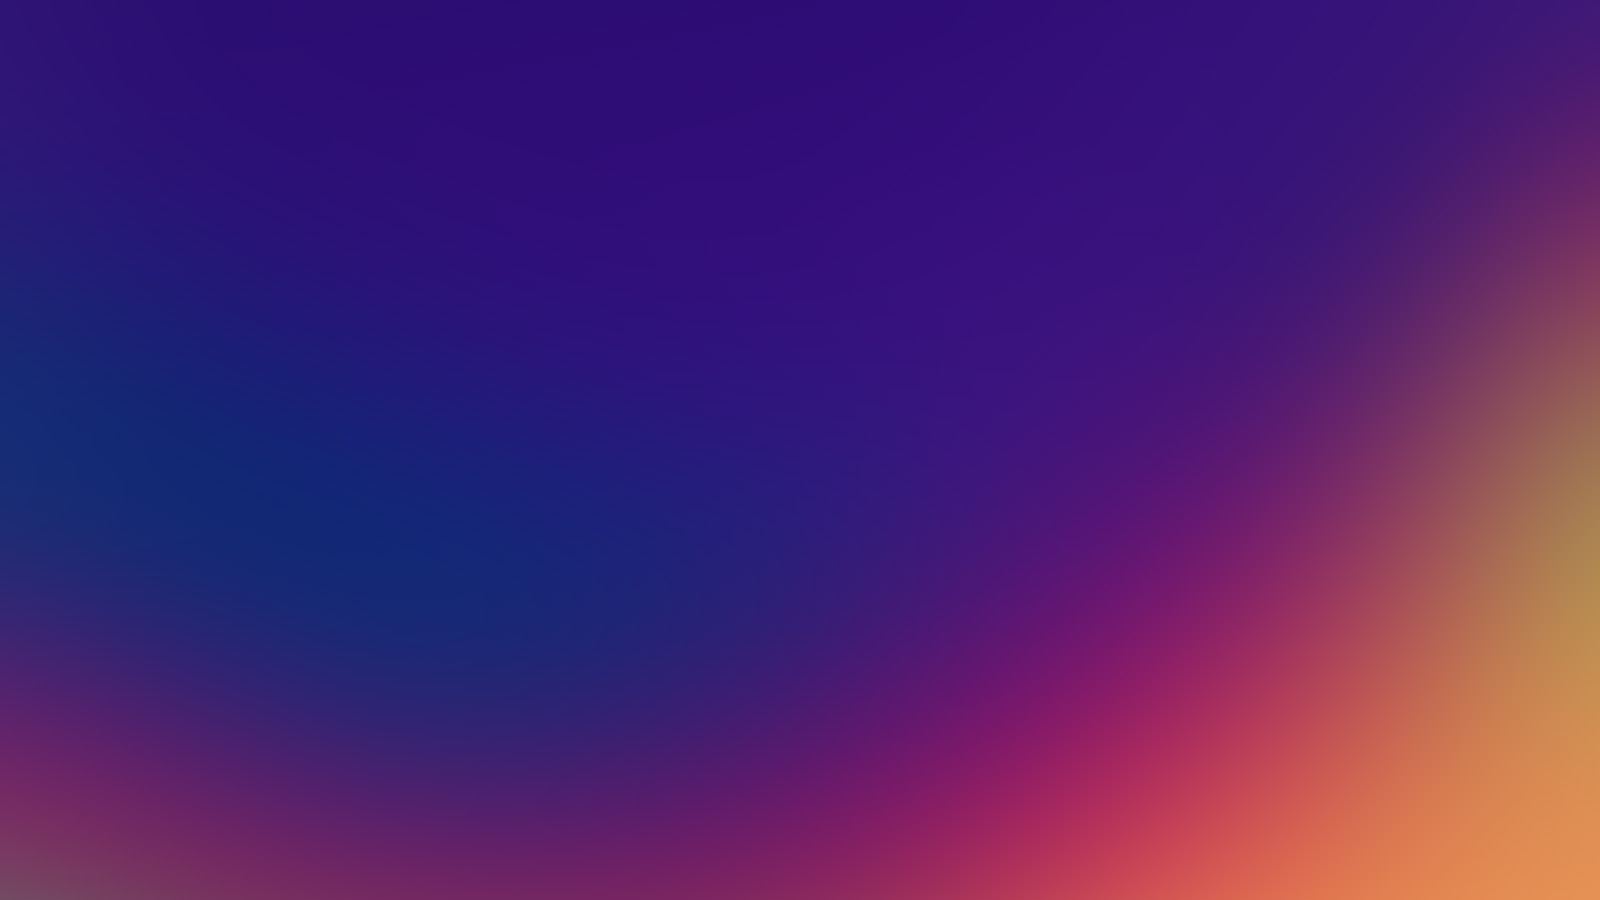 si80-rainbow-blue-gradation-blur-wallpaper